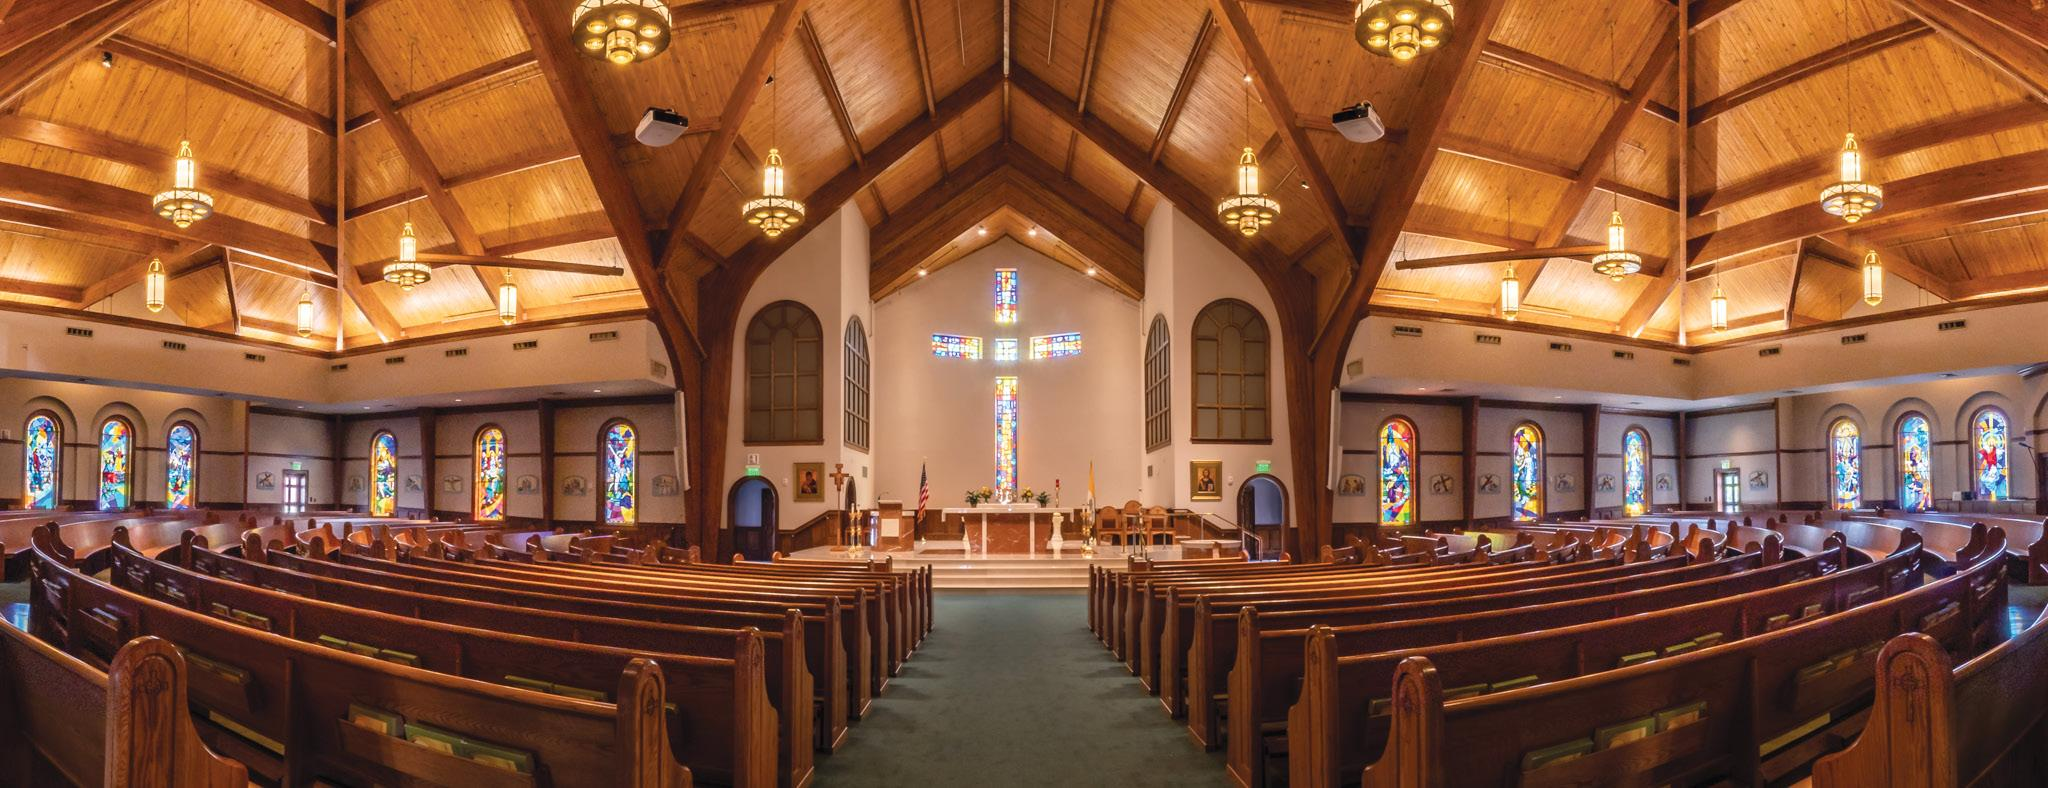 Page 4 of Our Parish Community: How We Engage in Ministry